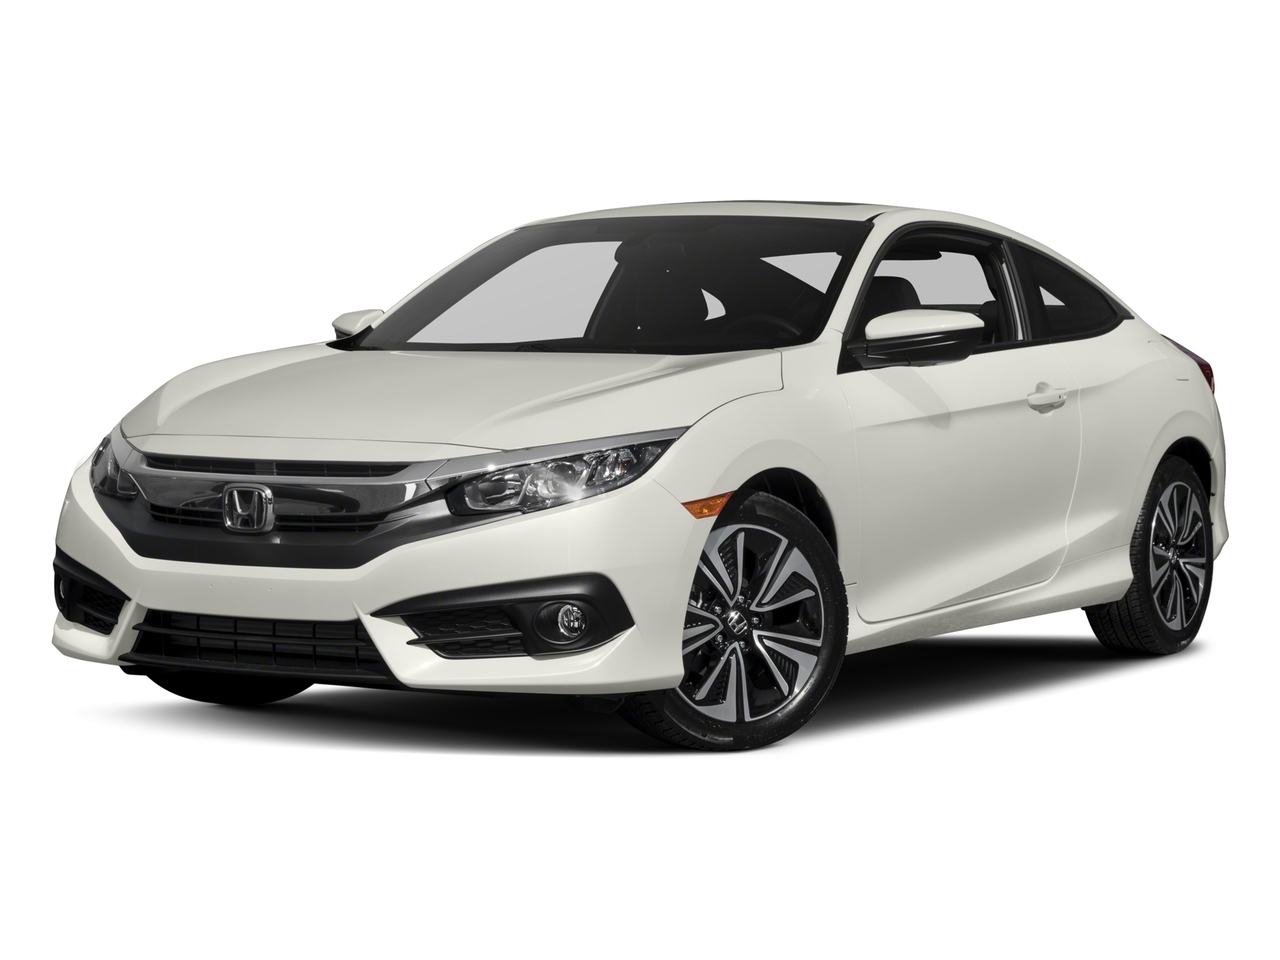 2017 Honda Civic Coupe - Wilmington, DE